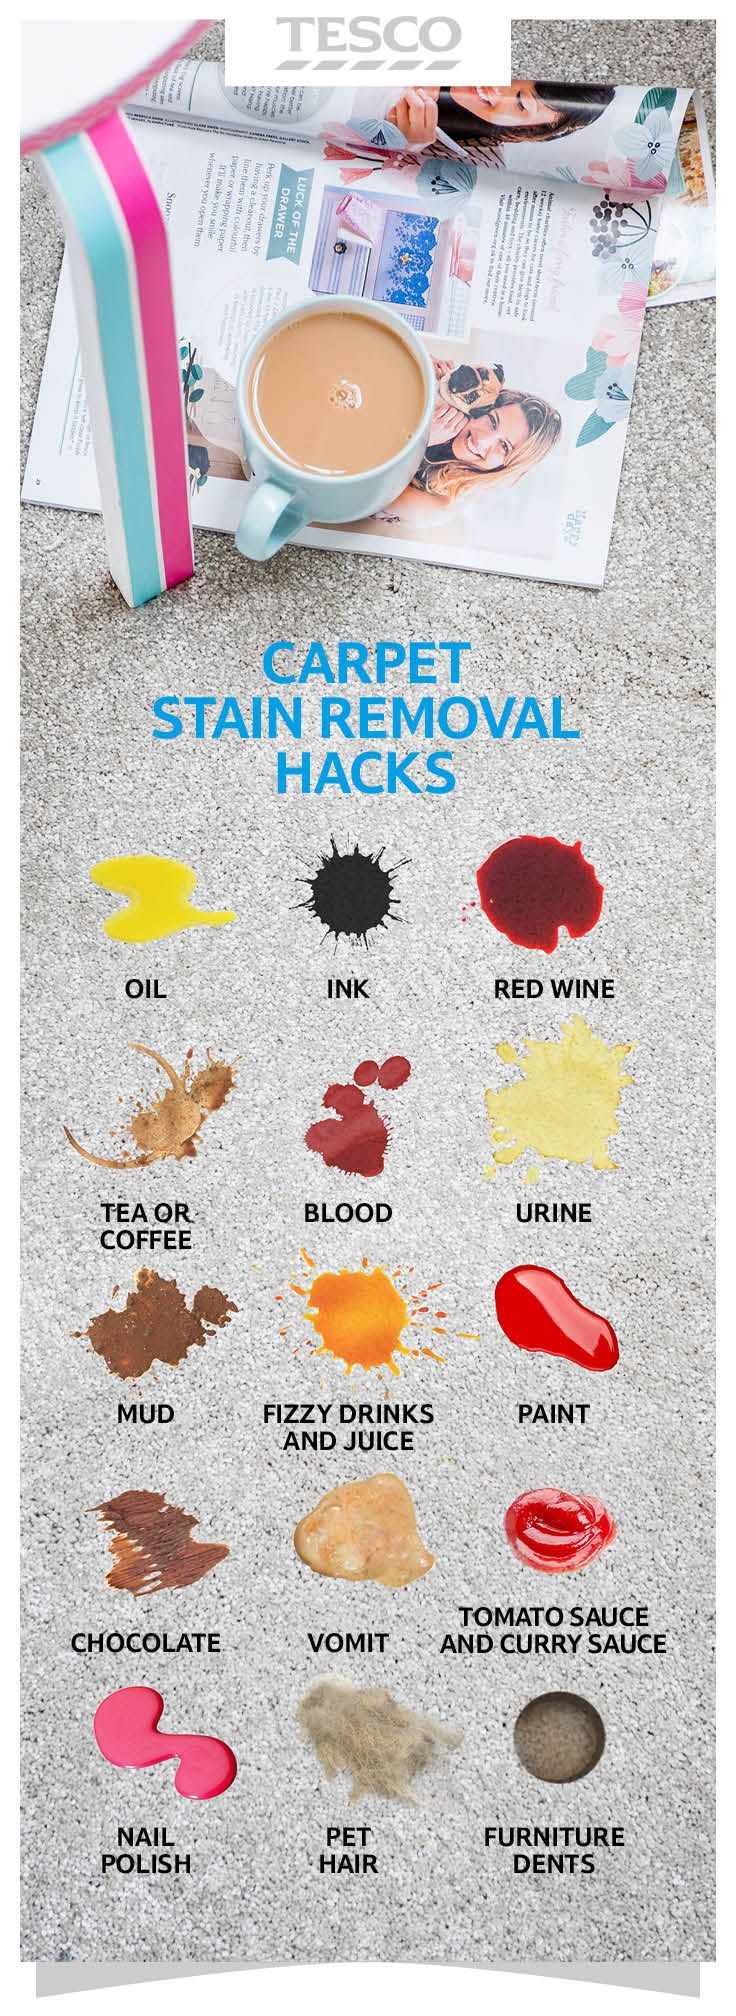 Tesco Cleaning Hacks Carpet Cleaning Hacks Stain Remover Carpet